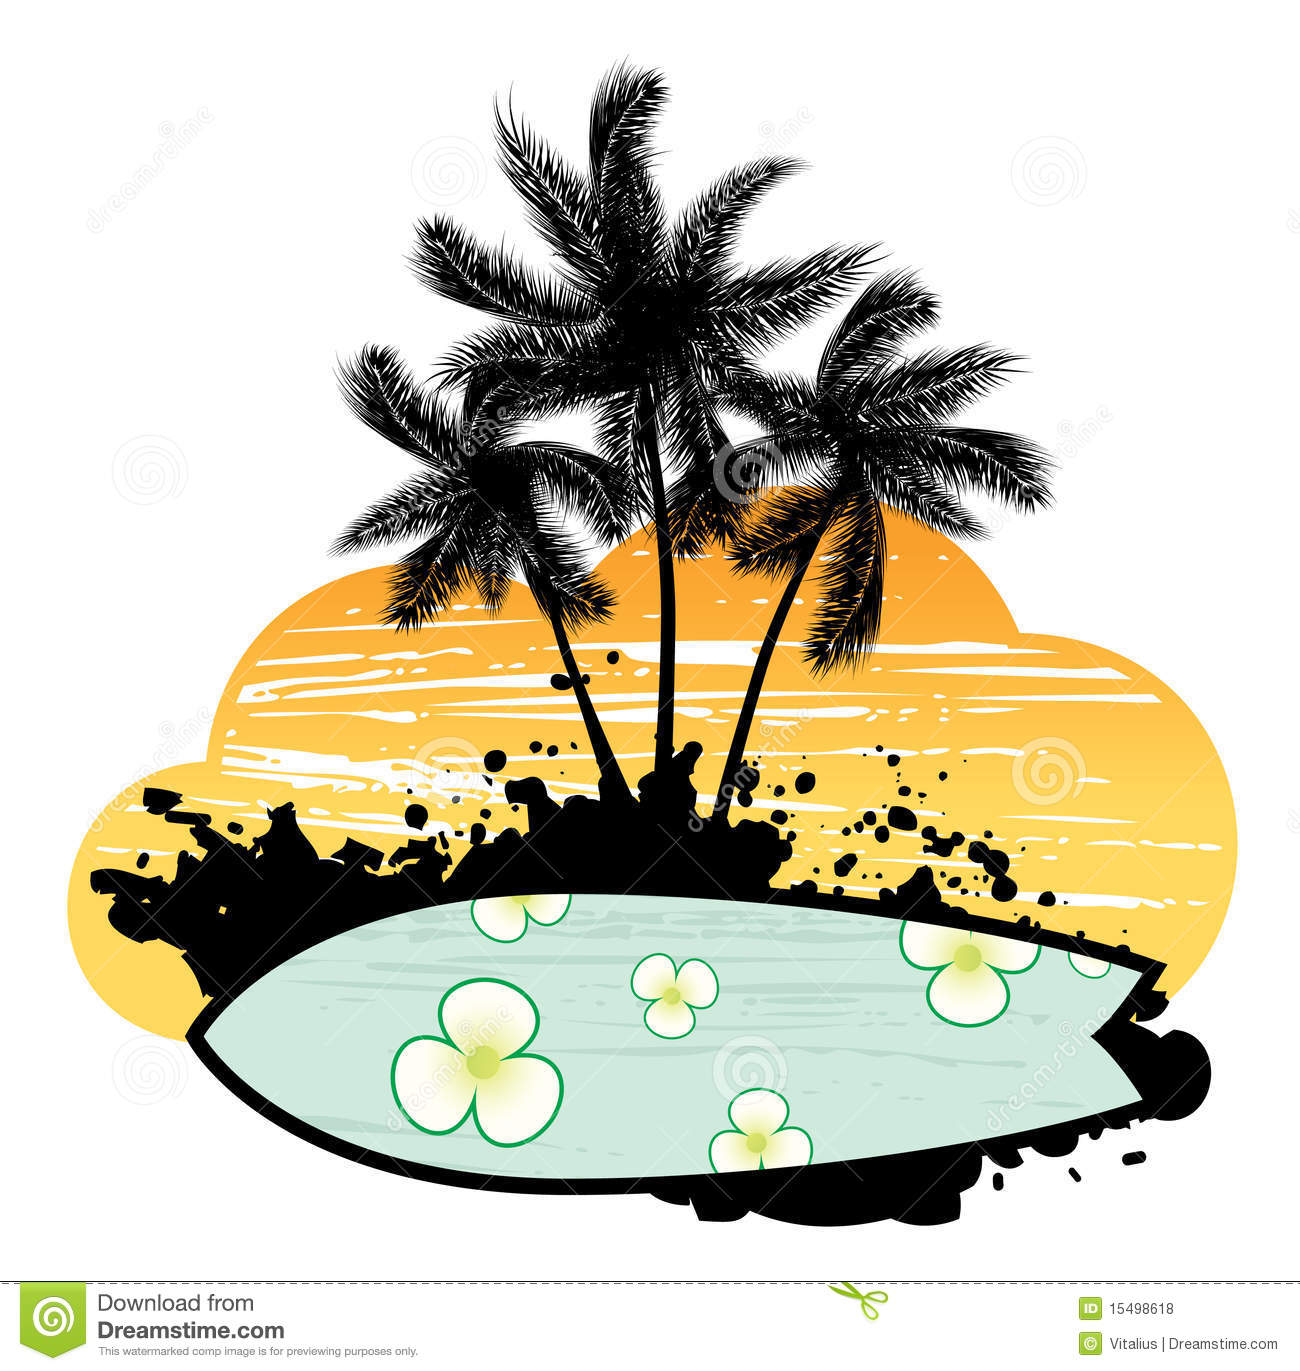 Surfboard palm tree clipart svg transparent download Abstract With Palm Trees And Surfboard Royalty Free Stock Photos ... svg transparent download